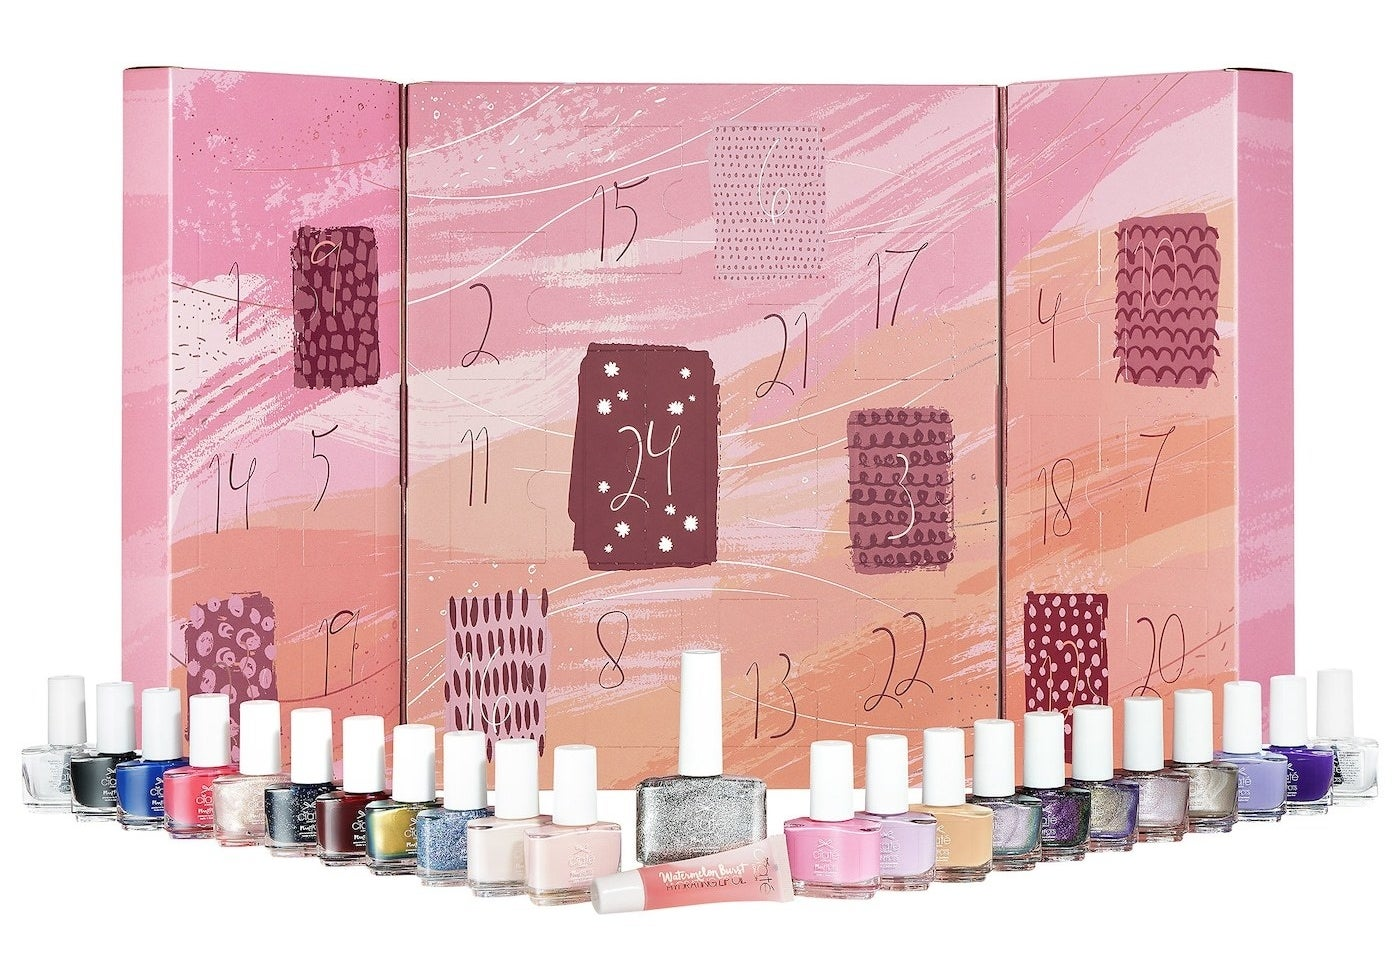 about 20 tiny nail polish bottles lined up in front of the pink adcent calendar